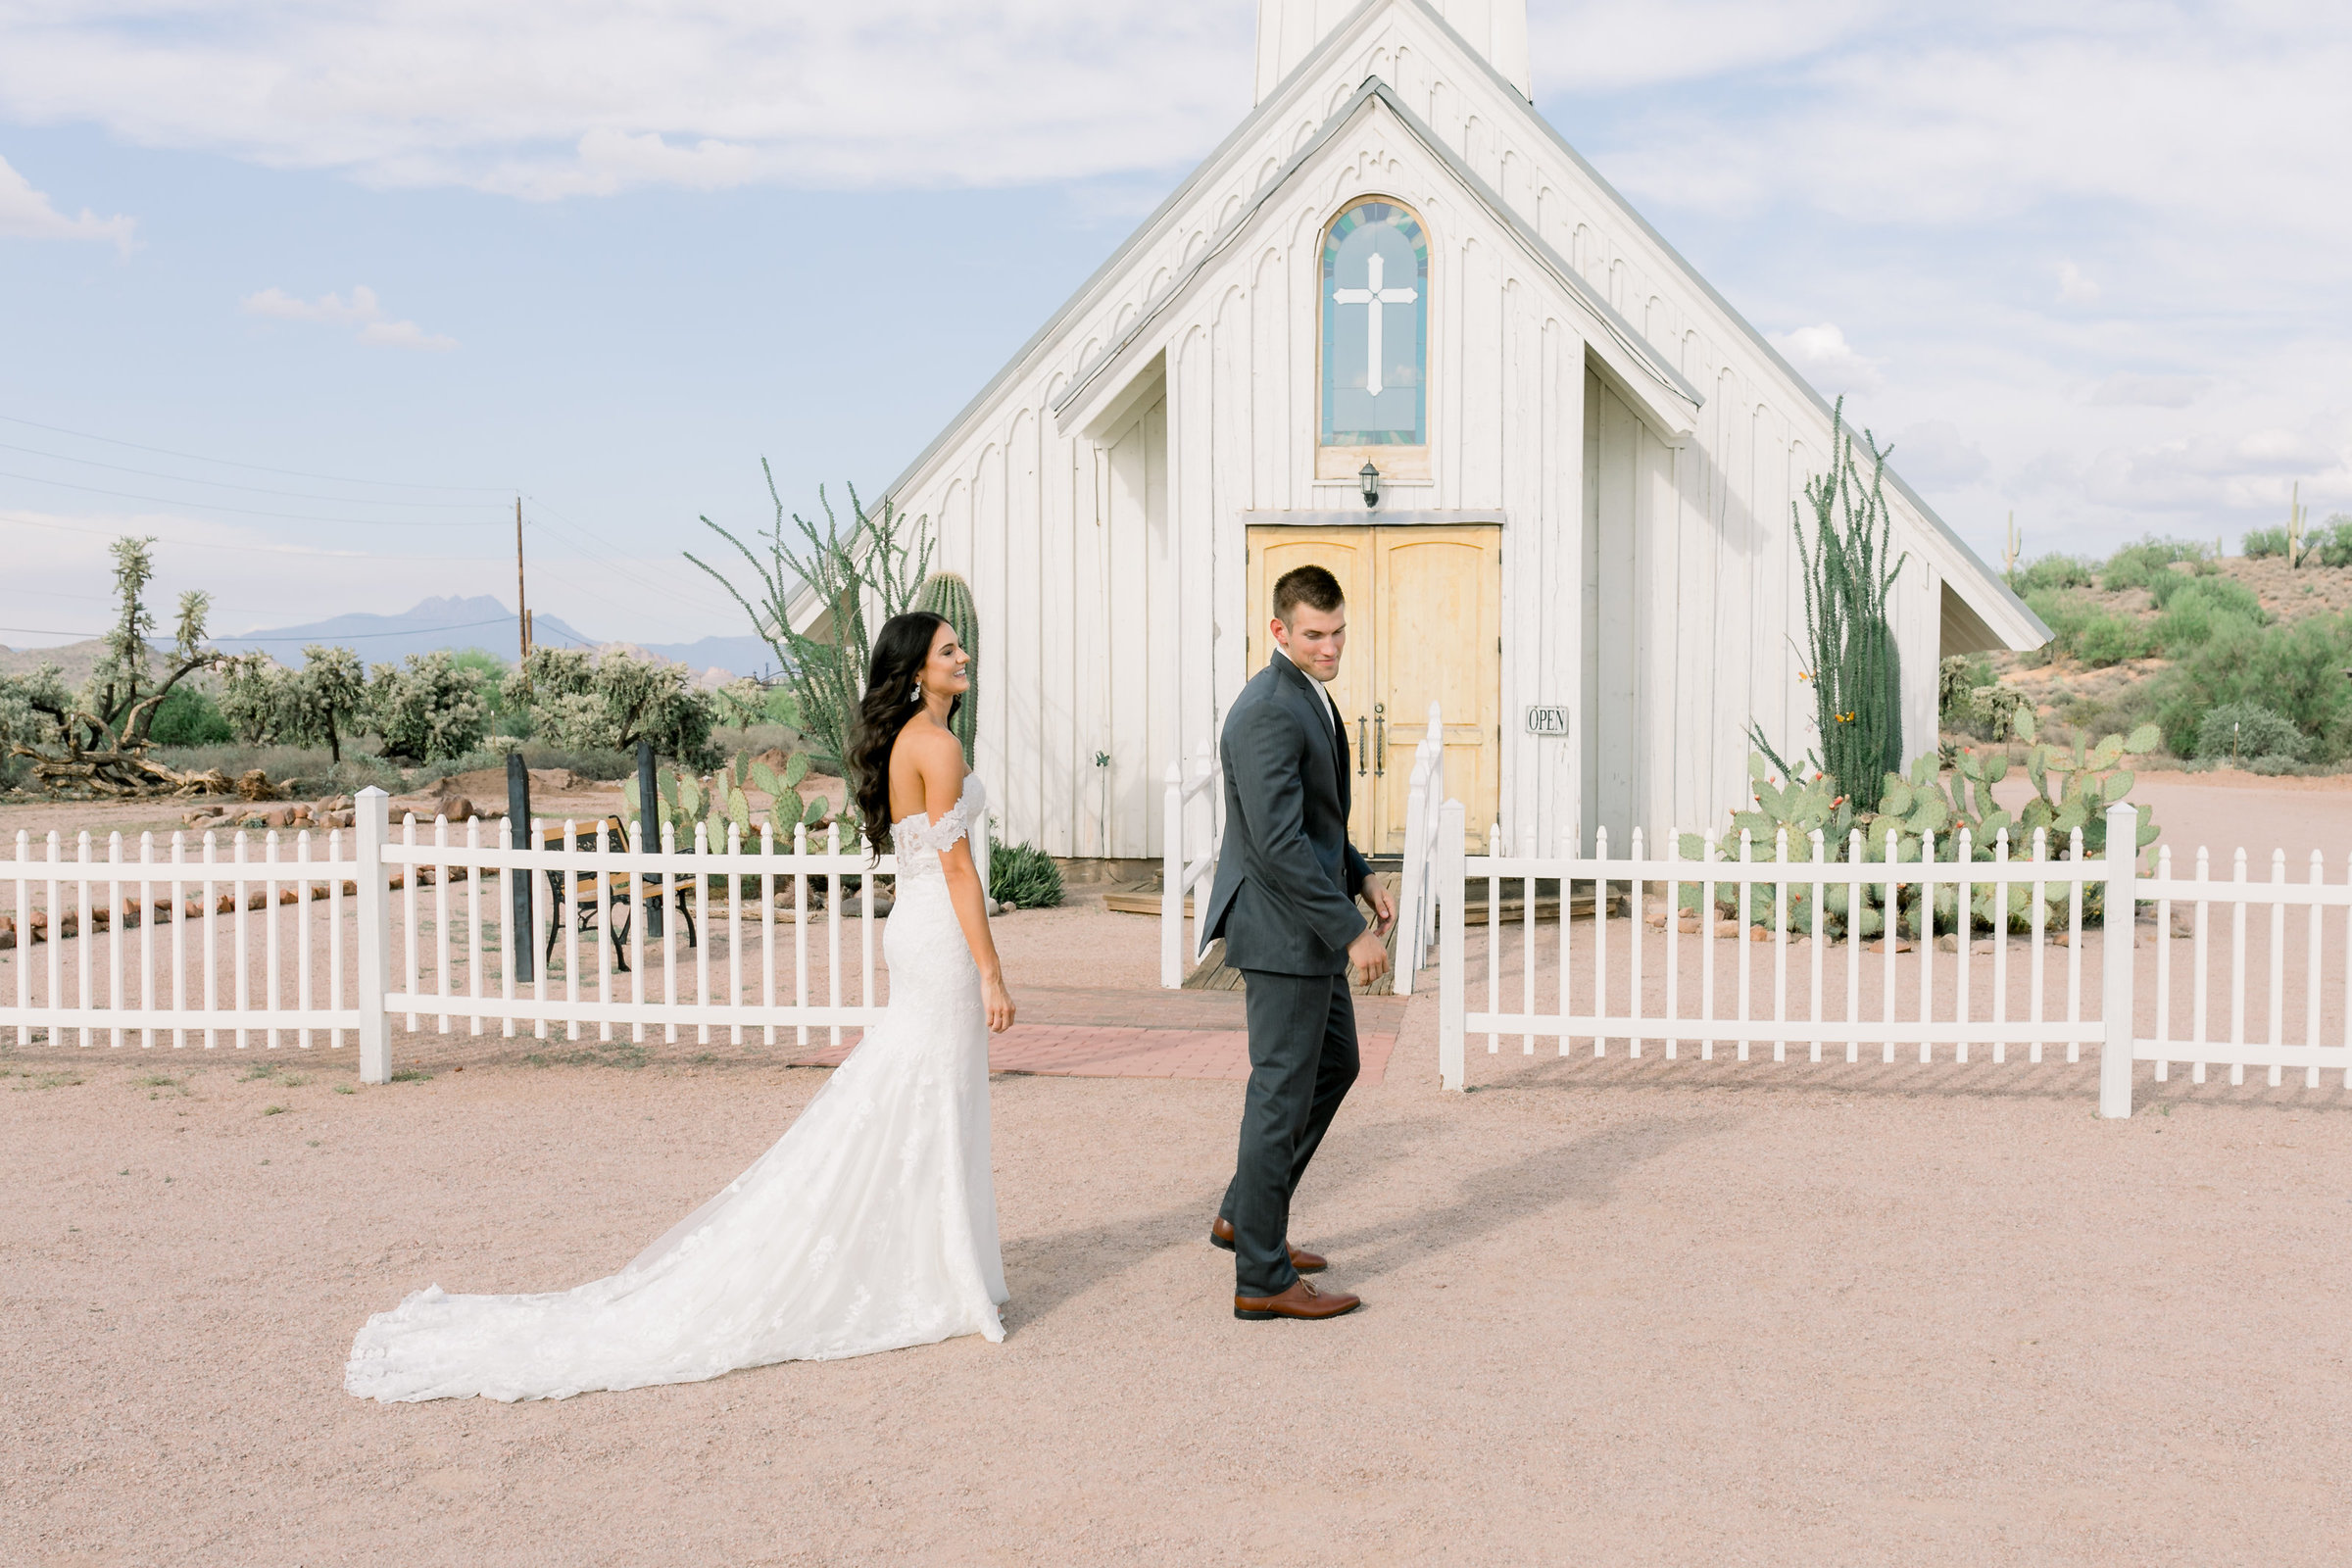 Karlie Colleen Photography - Arizona Wedding - The Paseo Venue - Jackie & Ryan -77